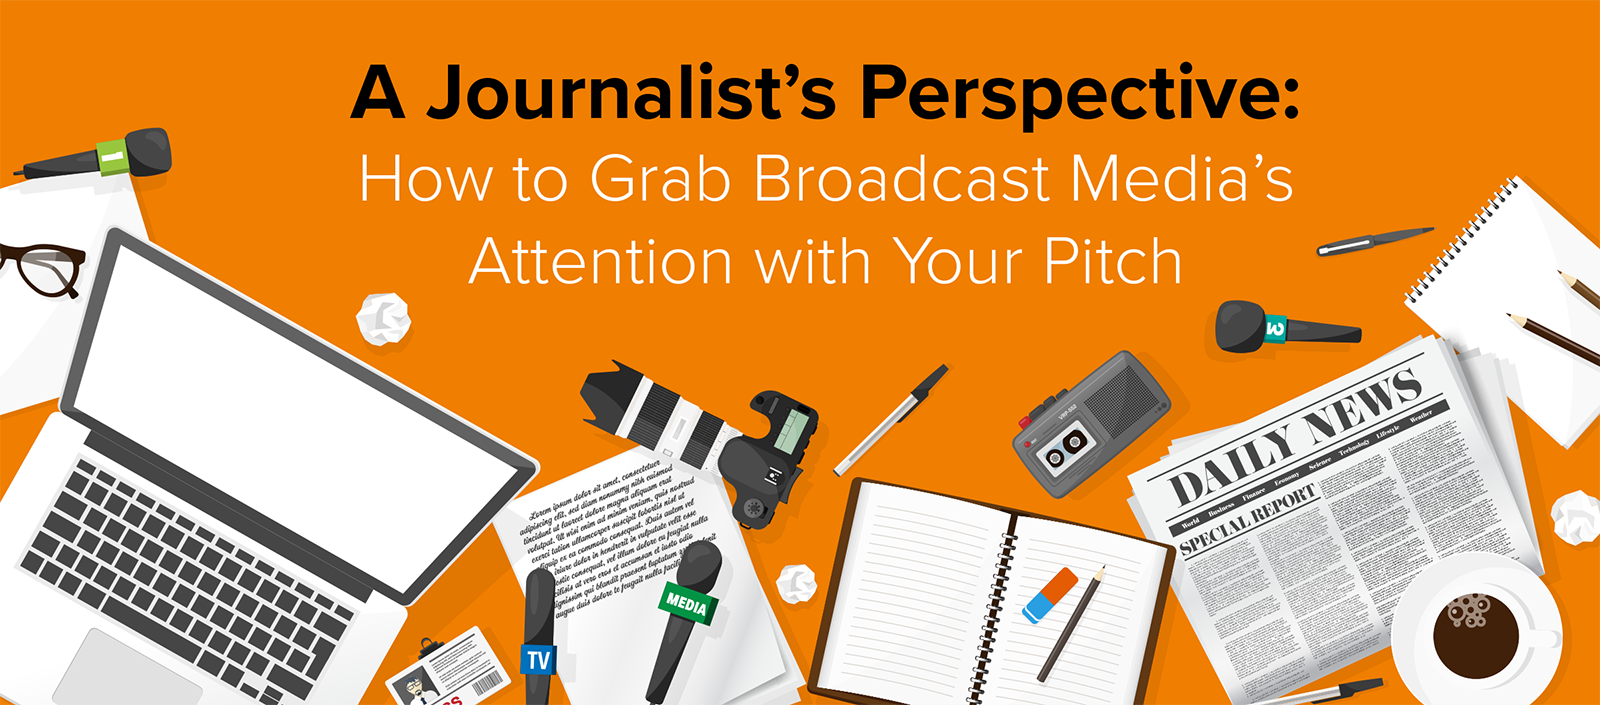 A Journalist's Perspective: How to Grab Broadcast Media's Attention with Your Pitch